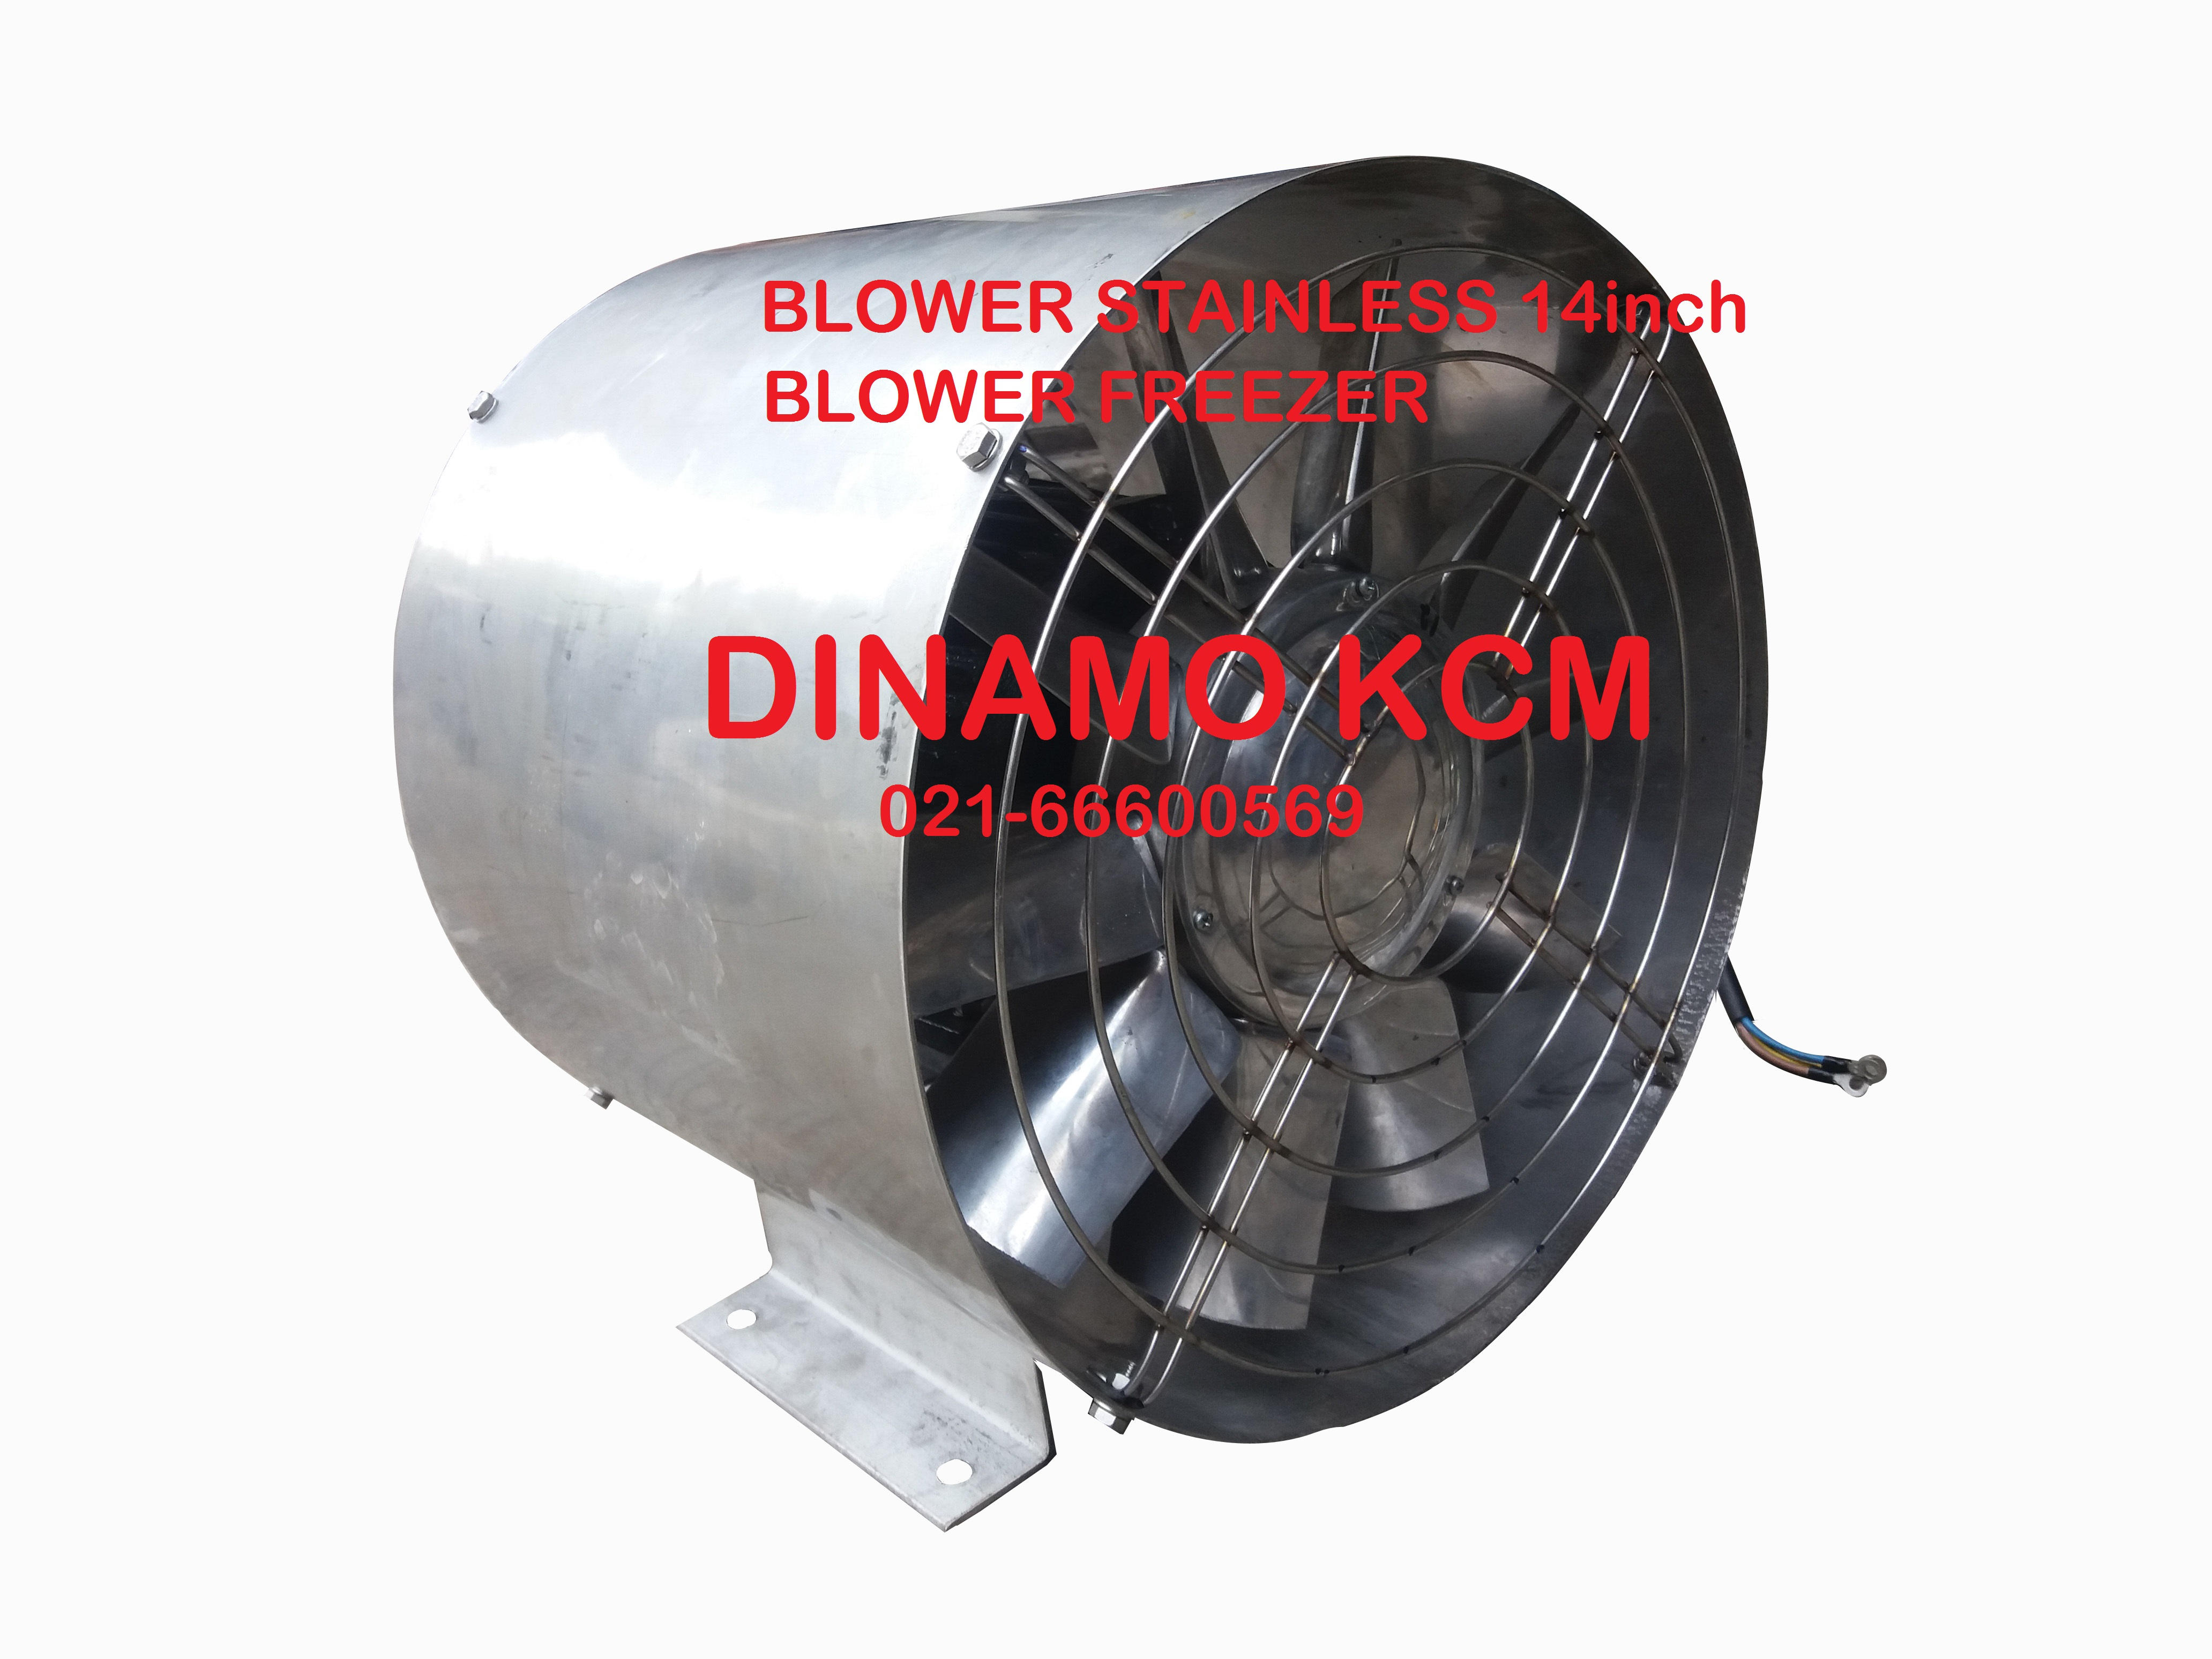 Blower Stainless - Blower Freezer